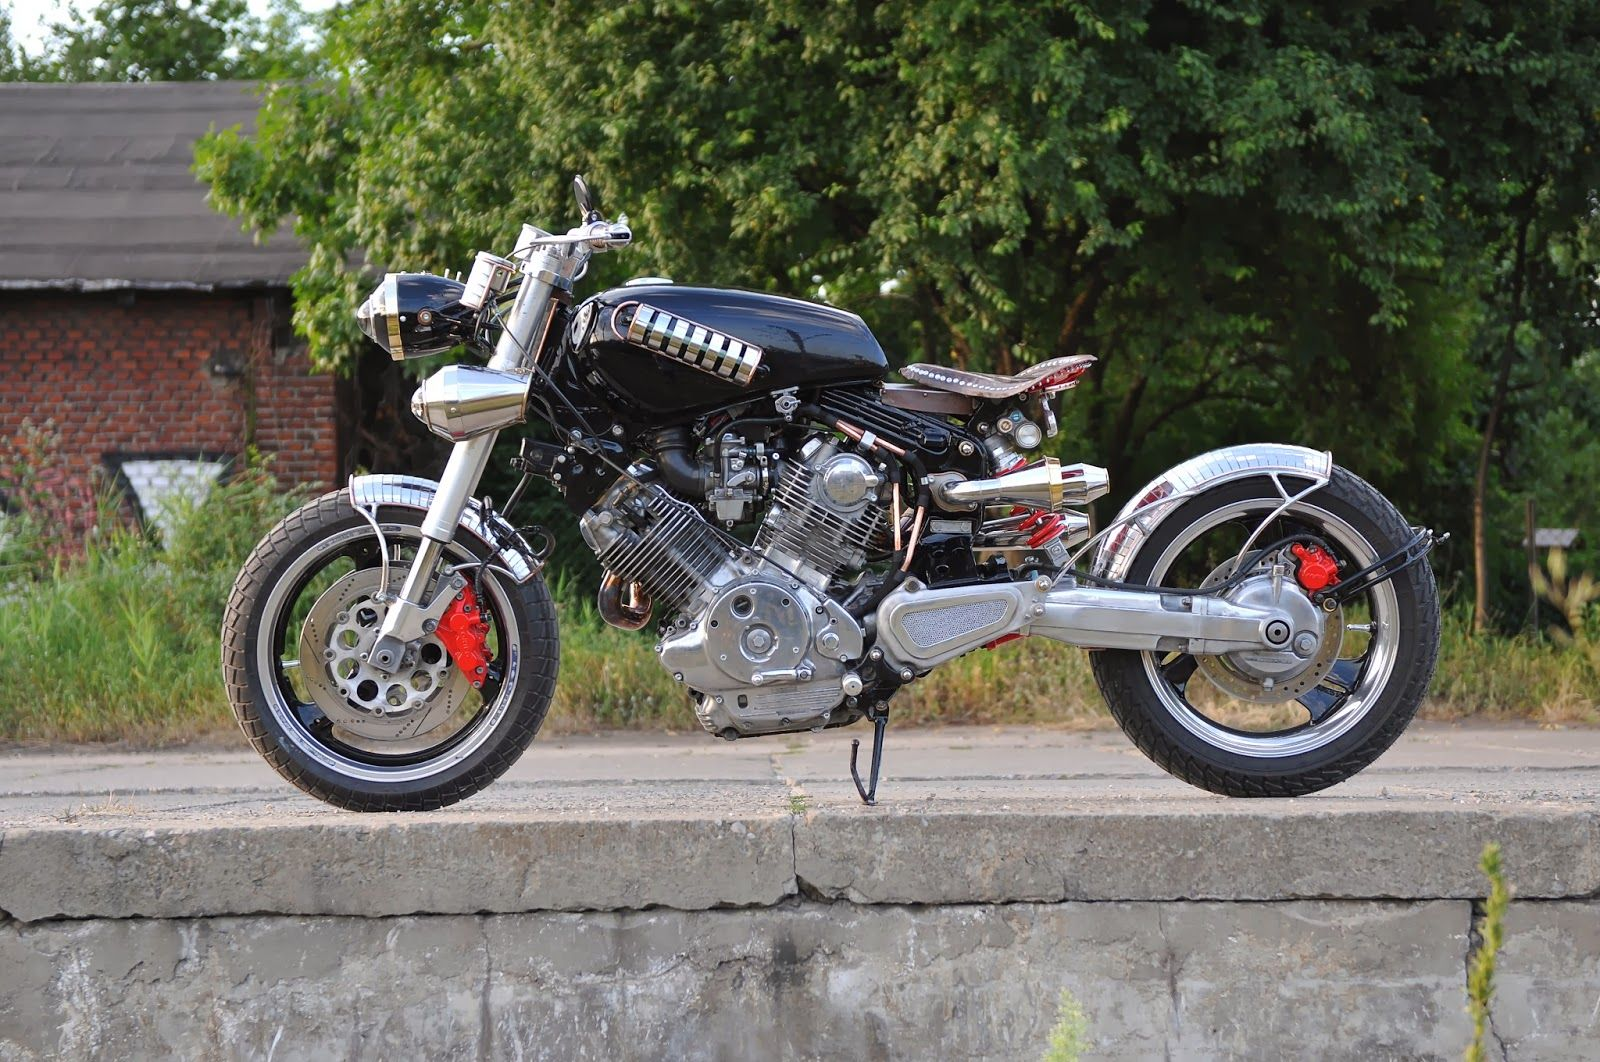 yamaha virago bobber custom yamaha xv750 custom yamaha virago 750 yamaha virago bobber. Black Bedroom Furniture Sets. Home Design Ideas